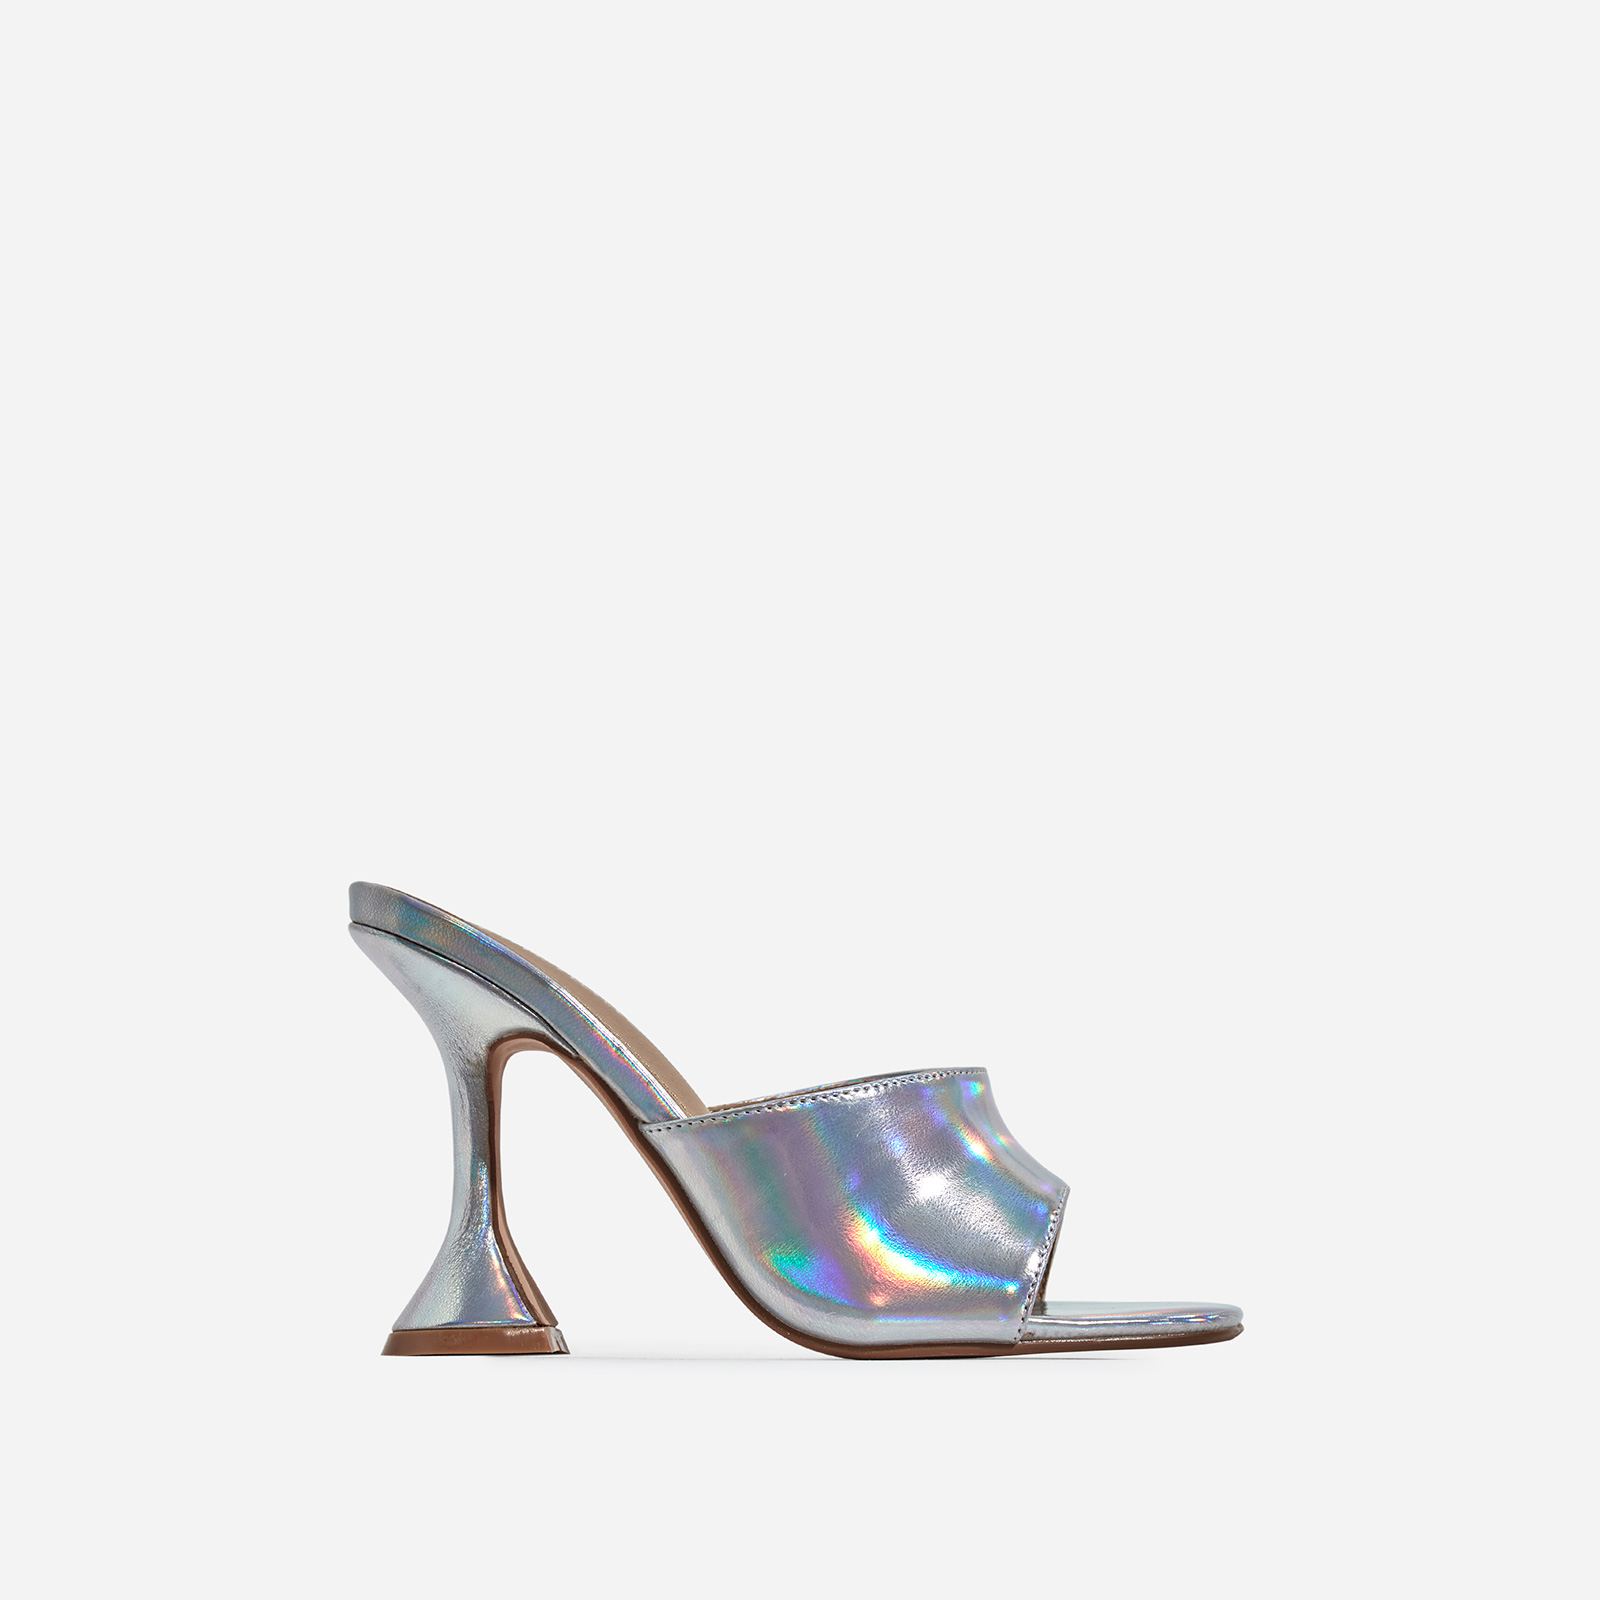 Jordi Peep Square Toe Heel Mule In Silver Holographic Faux Leather